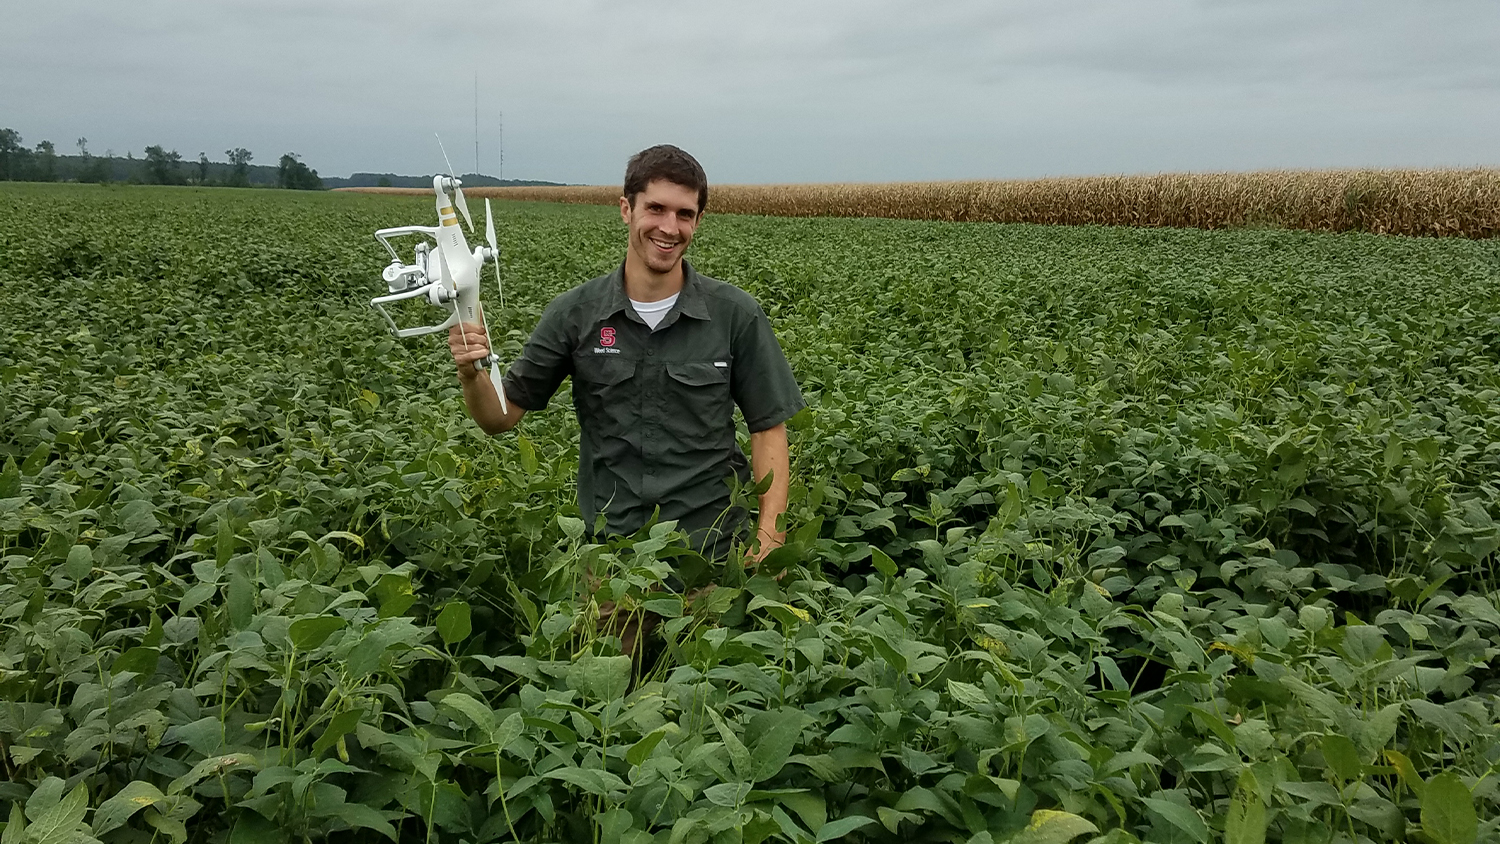 Researcher holds drone in NC farm field